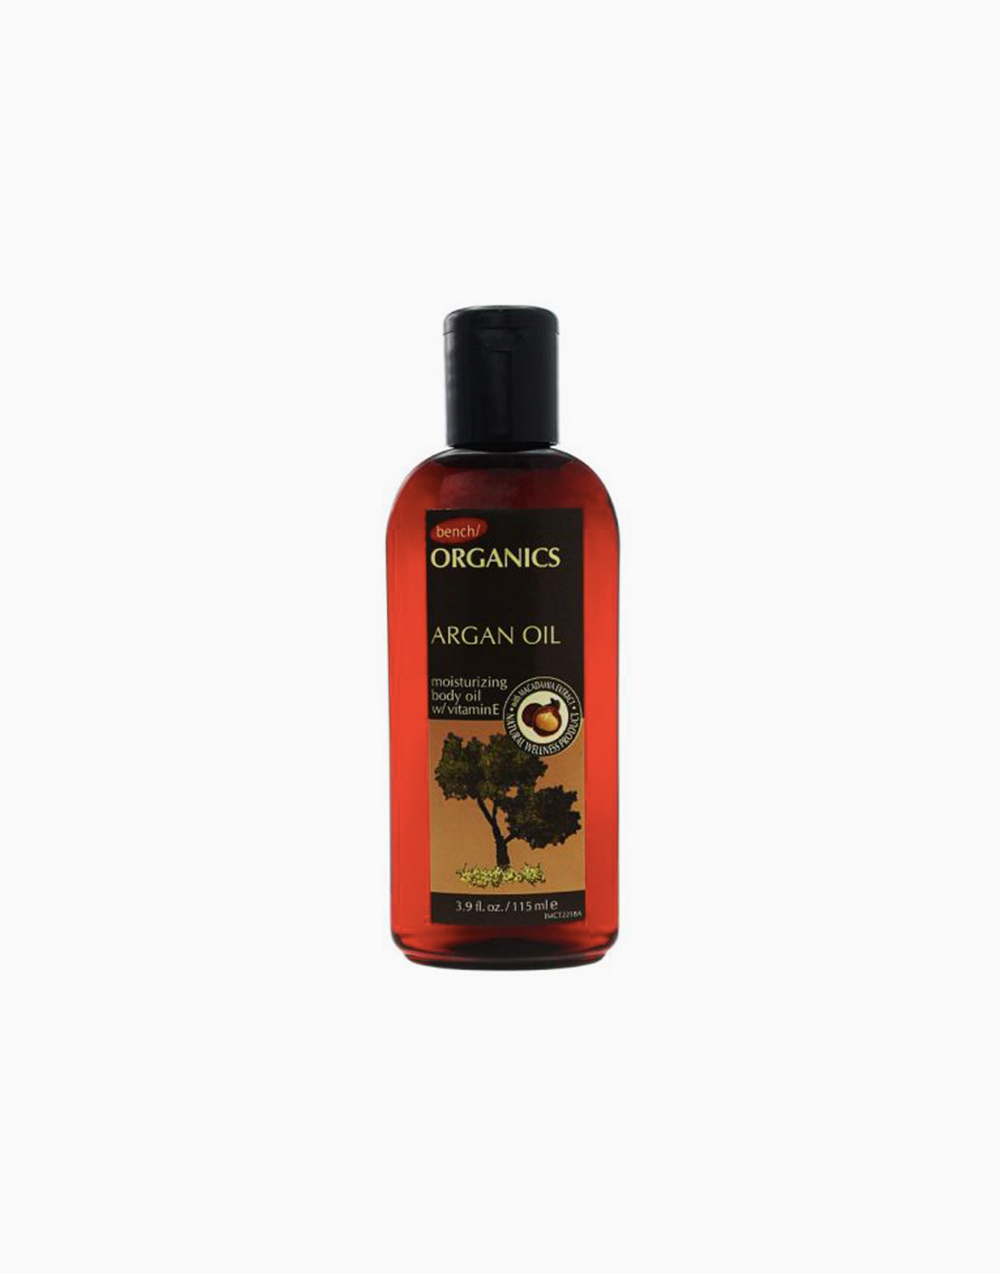 Organics: Argan Oil from Morocco (115ml) by BENCH